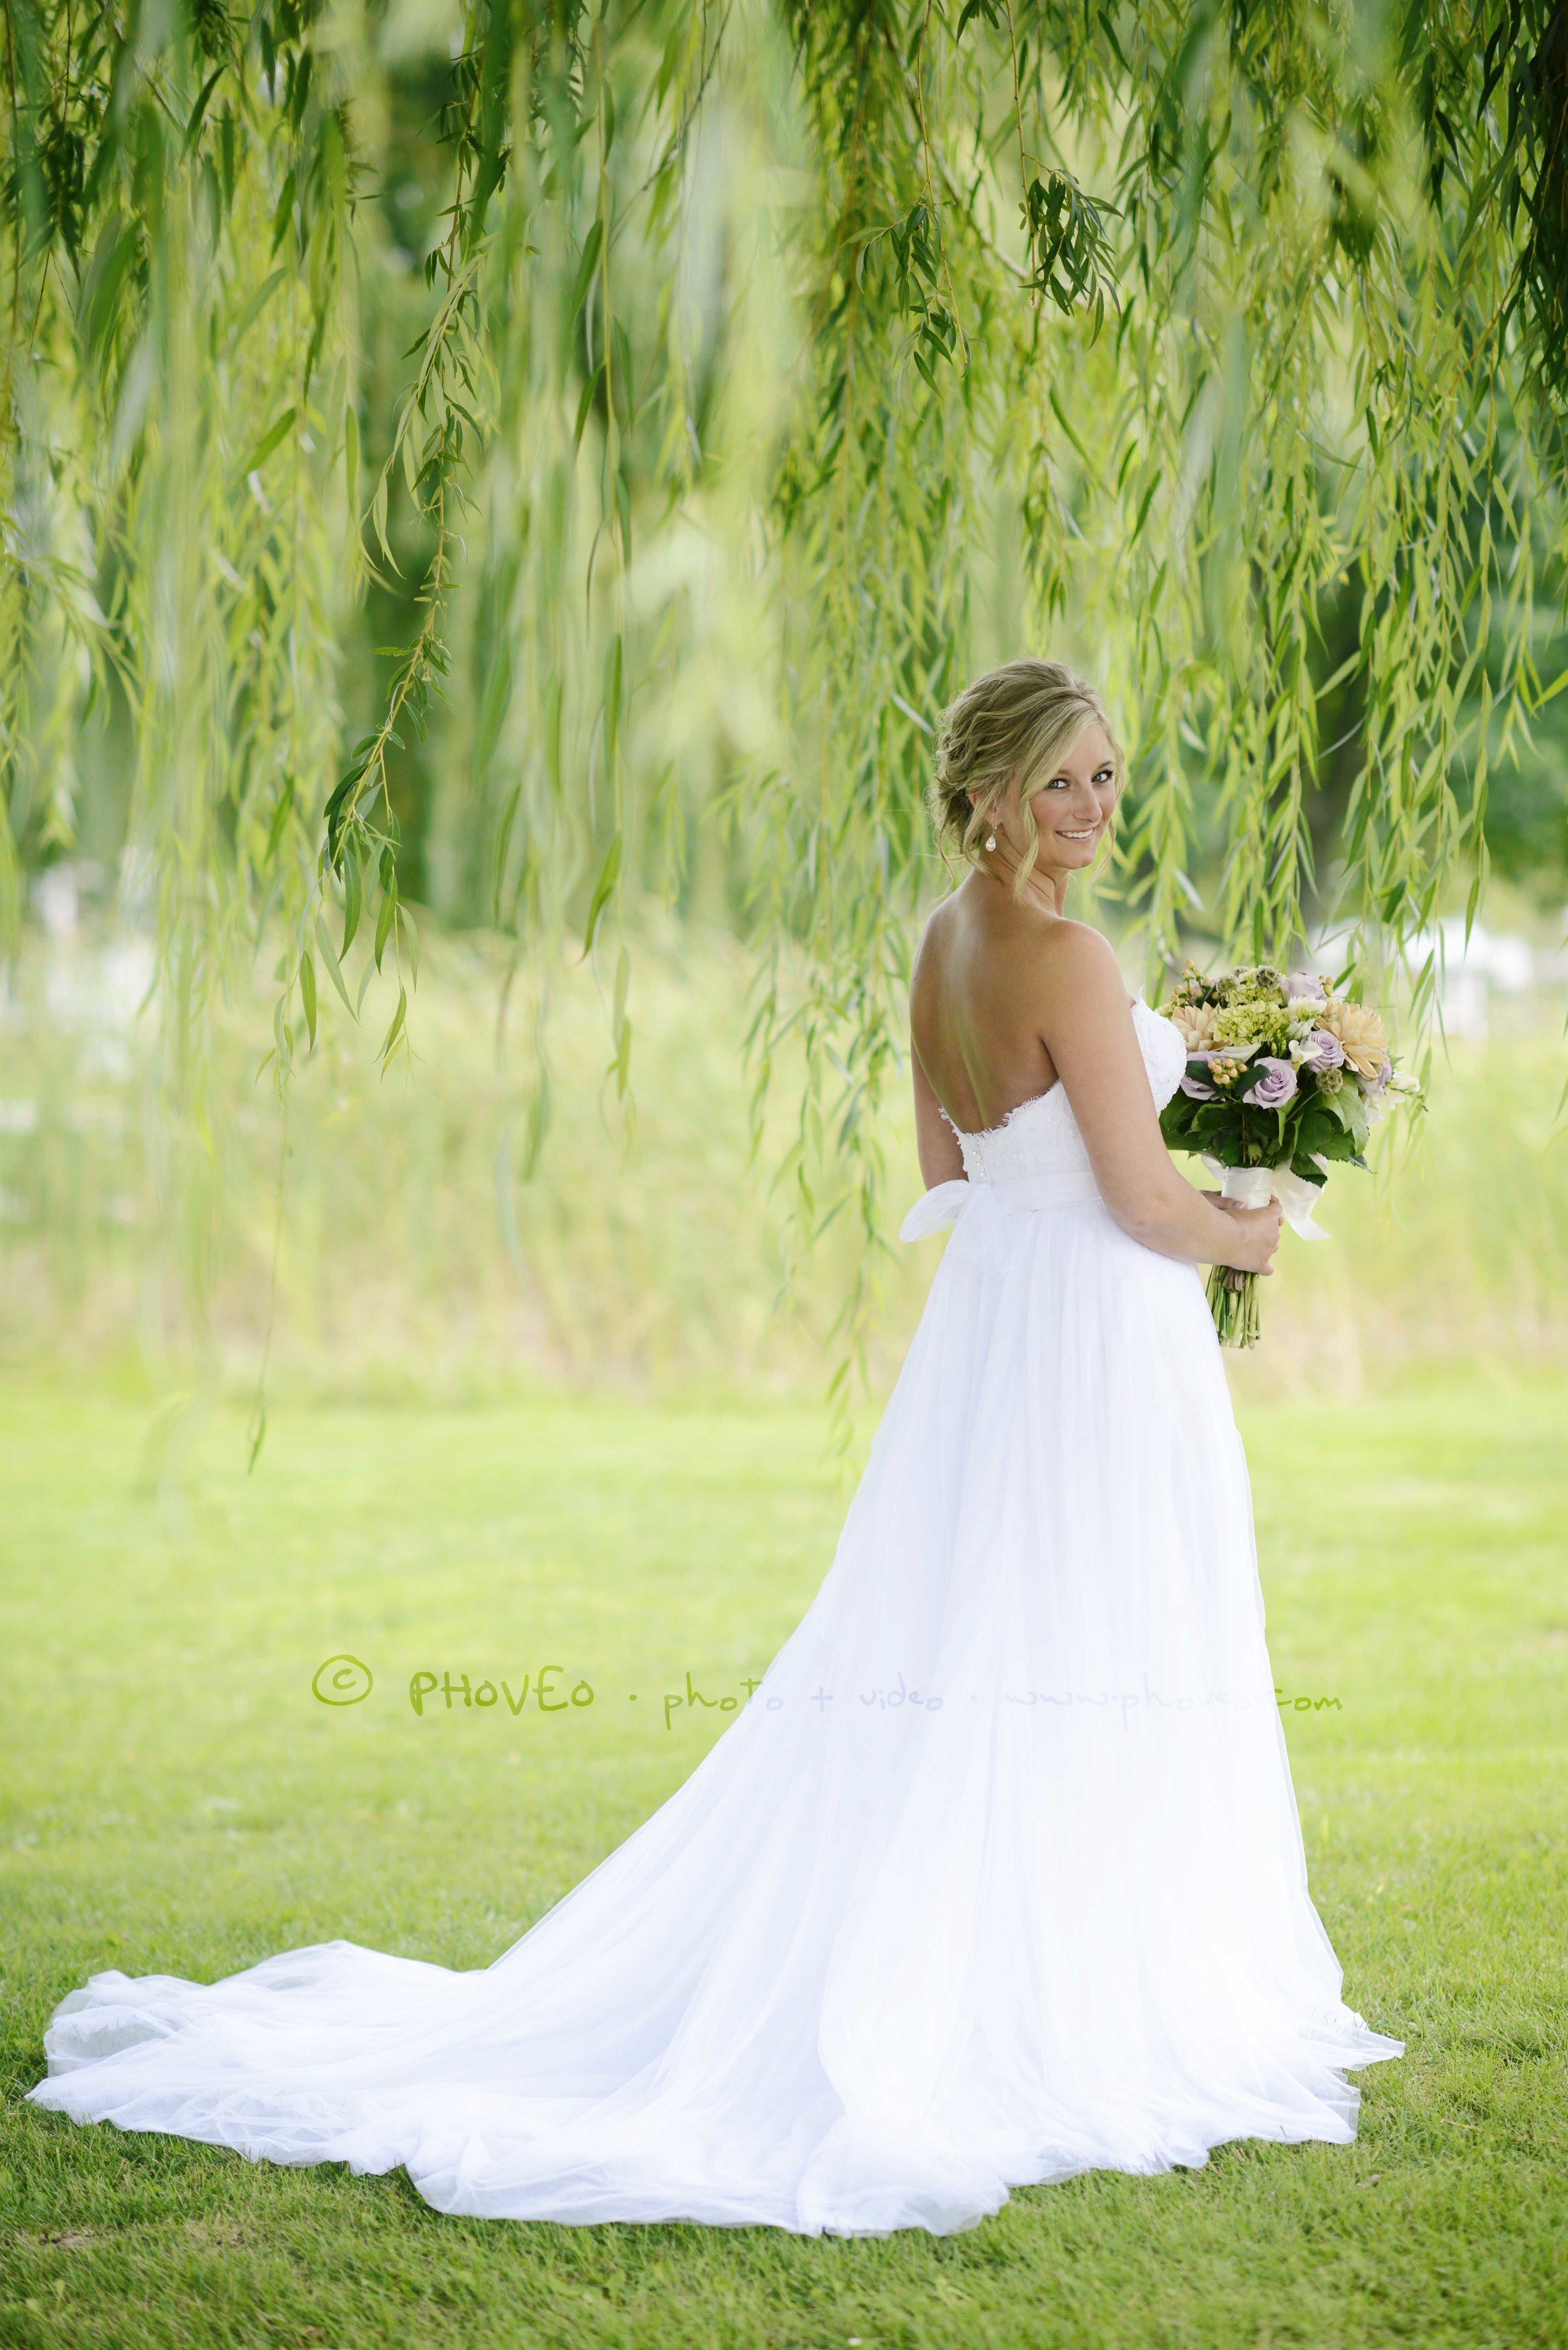 WM_20160826_Katelyn+Tony_137.jpg